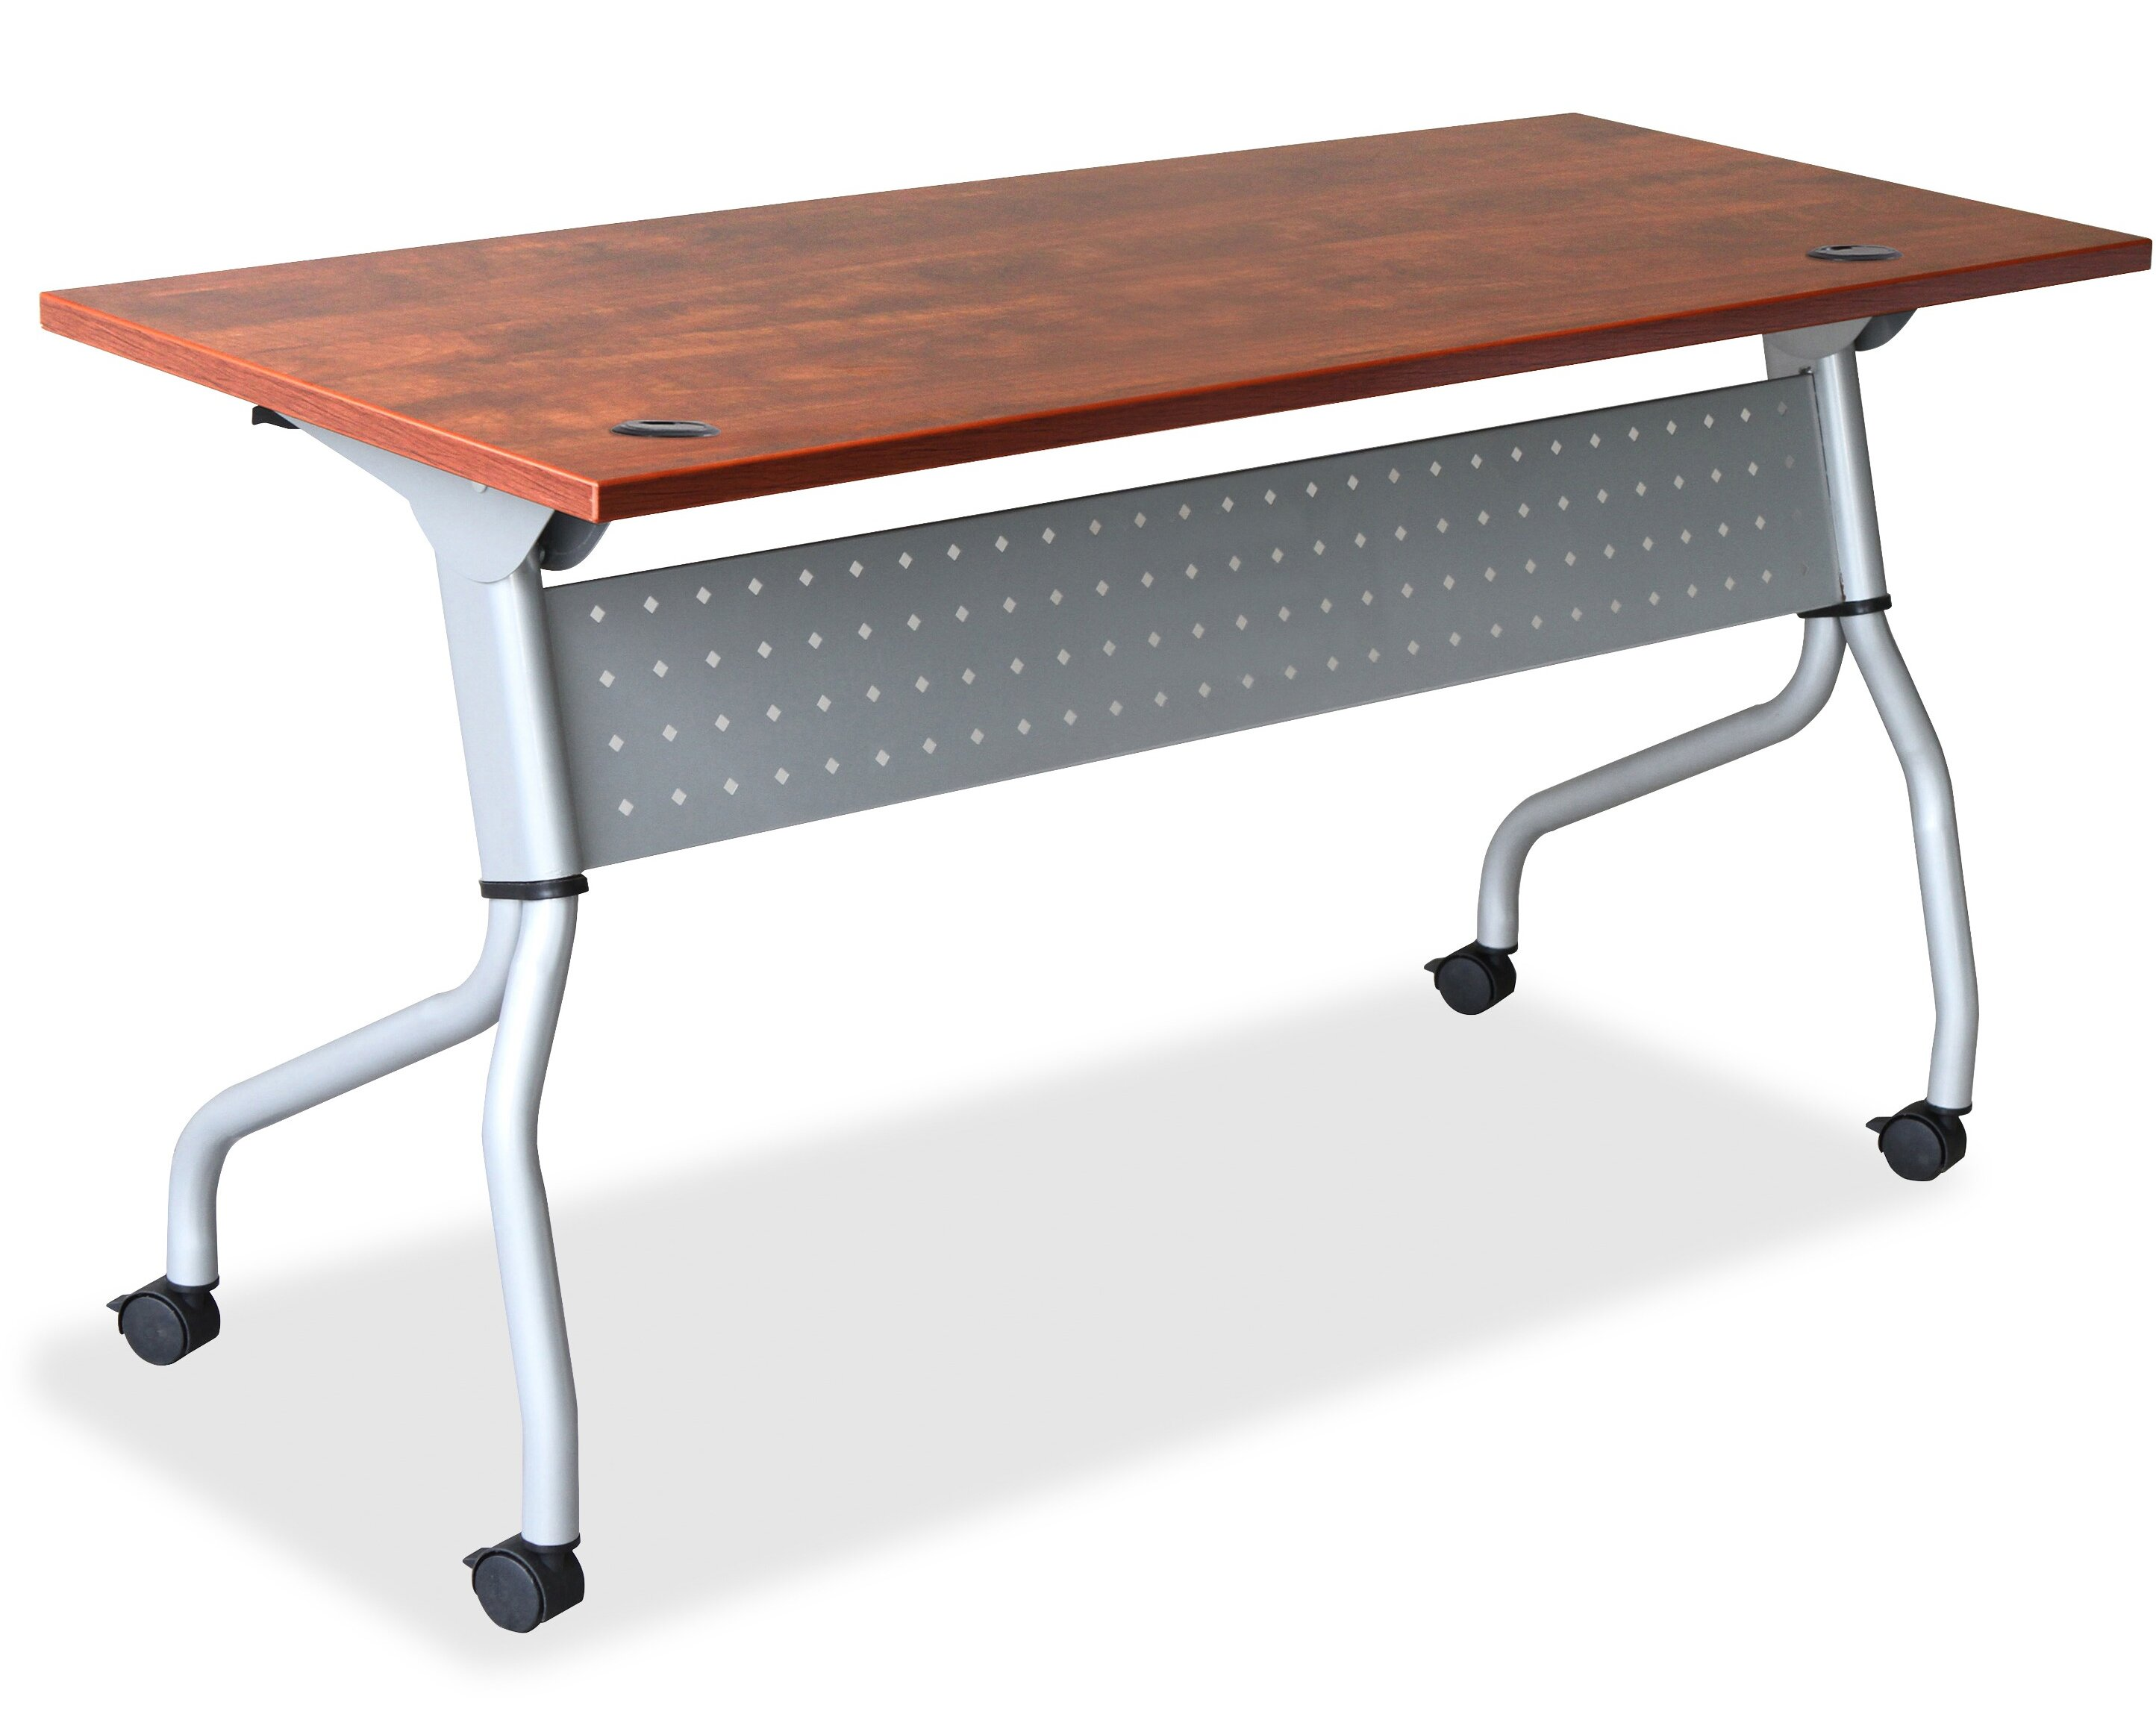 Lorell Flipper Training Table With Wheels Wayfair - Lorell flipper training table